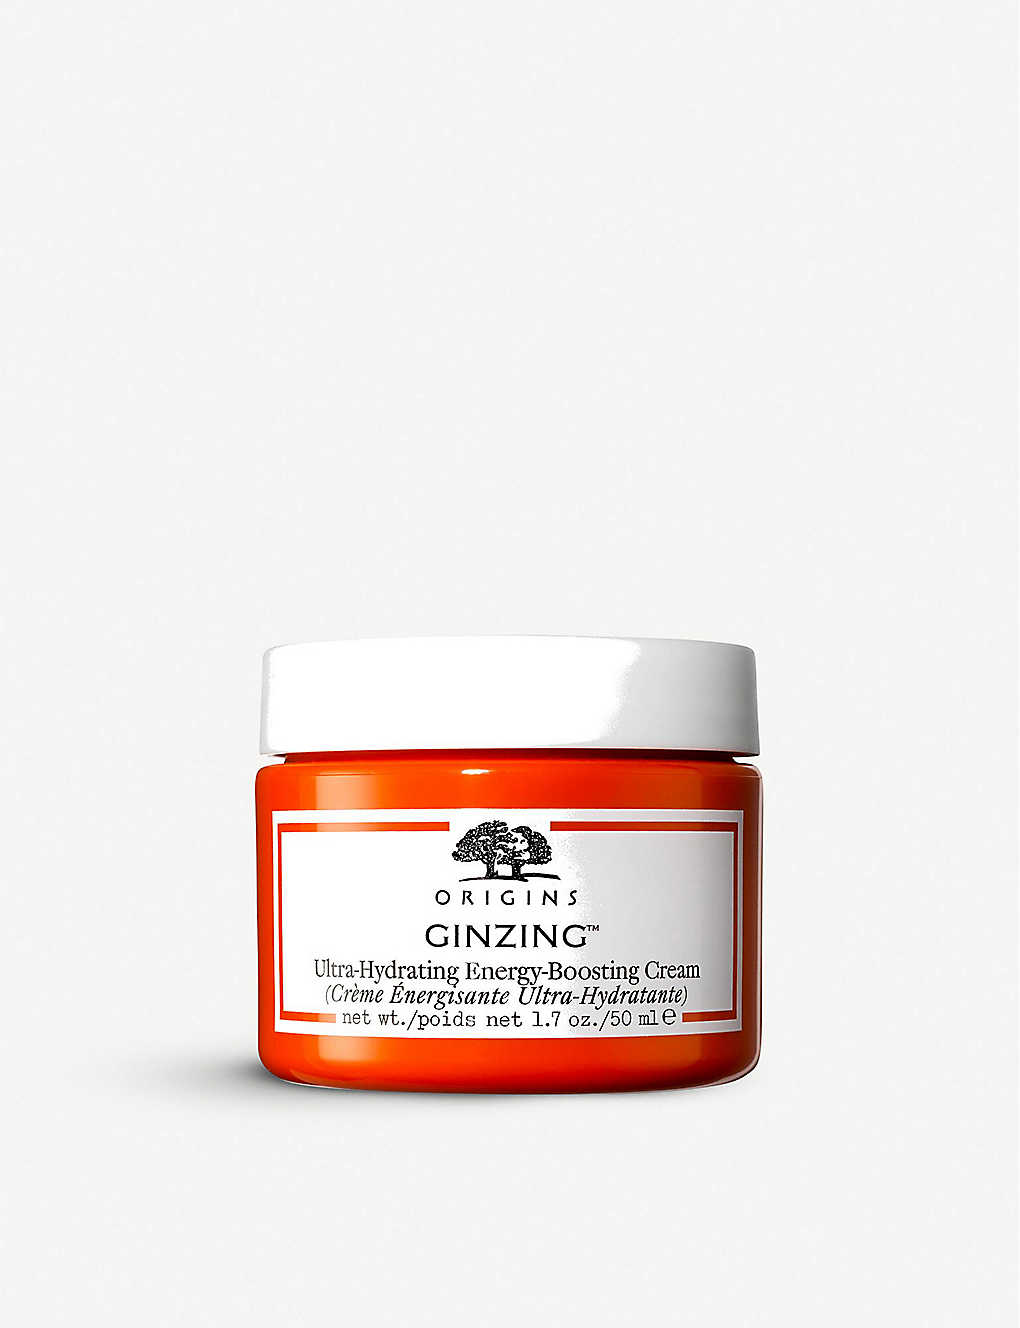 ORIGINS: Ginzing Ultra-Hydrating Energy-Boosting Cream 50ml